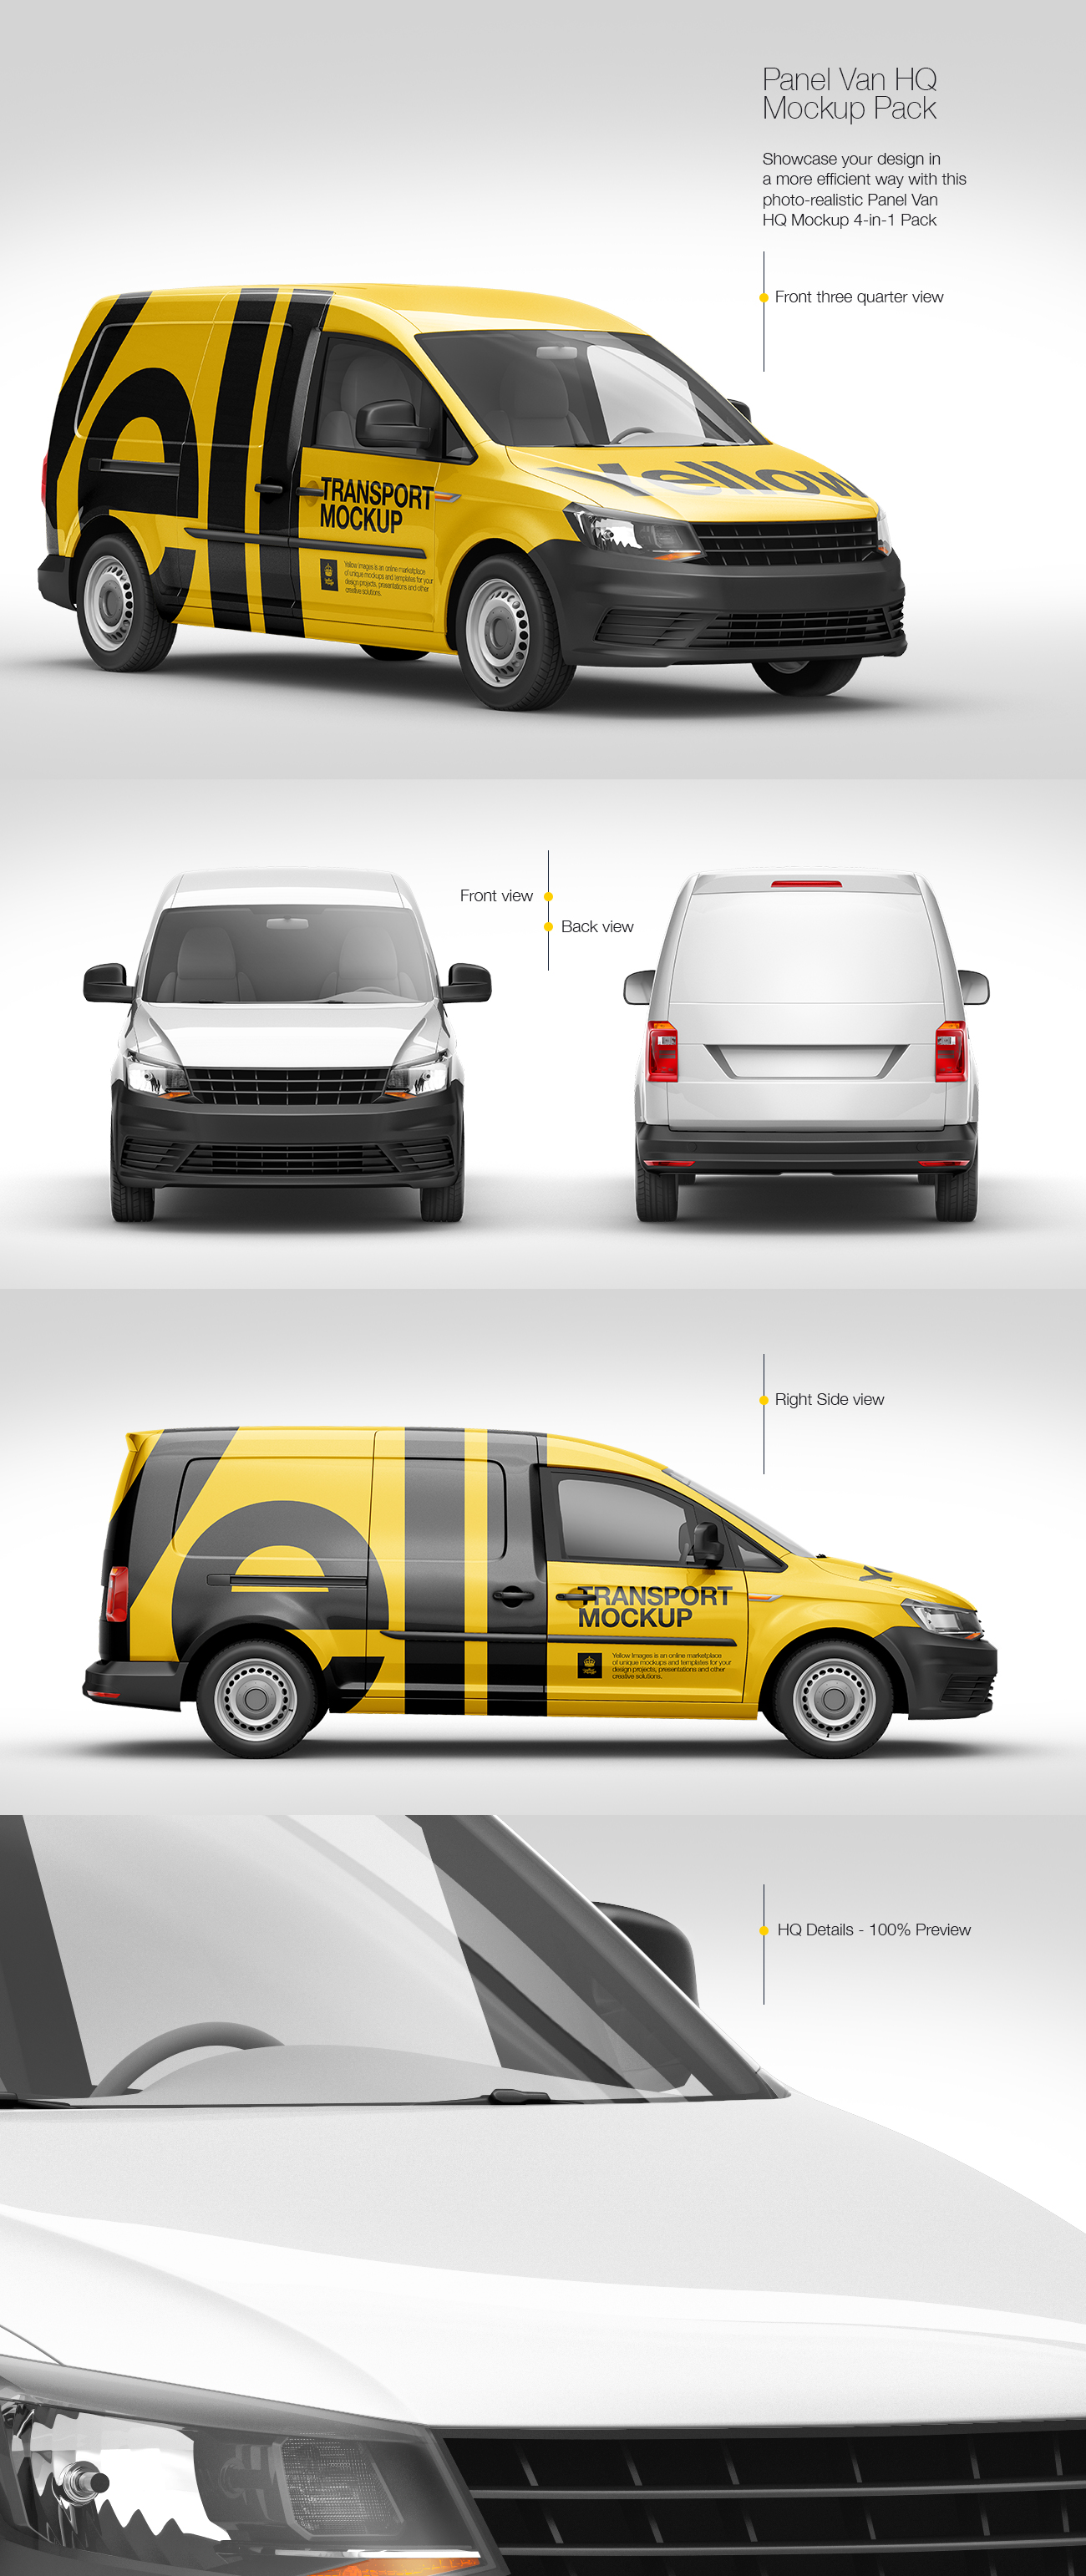 Panel Van HQ Mockup Pack